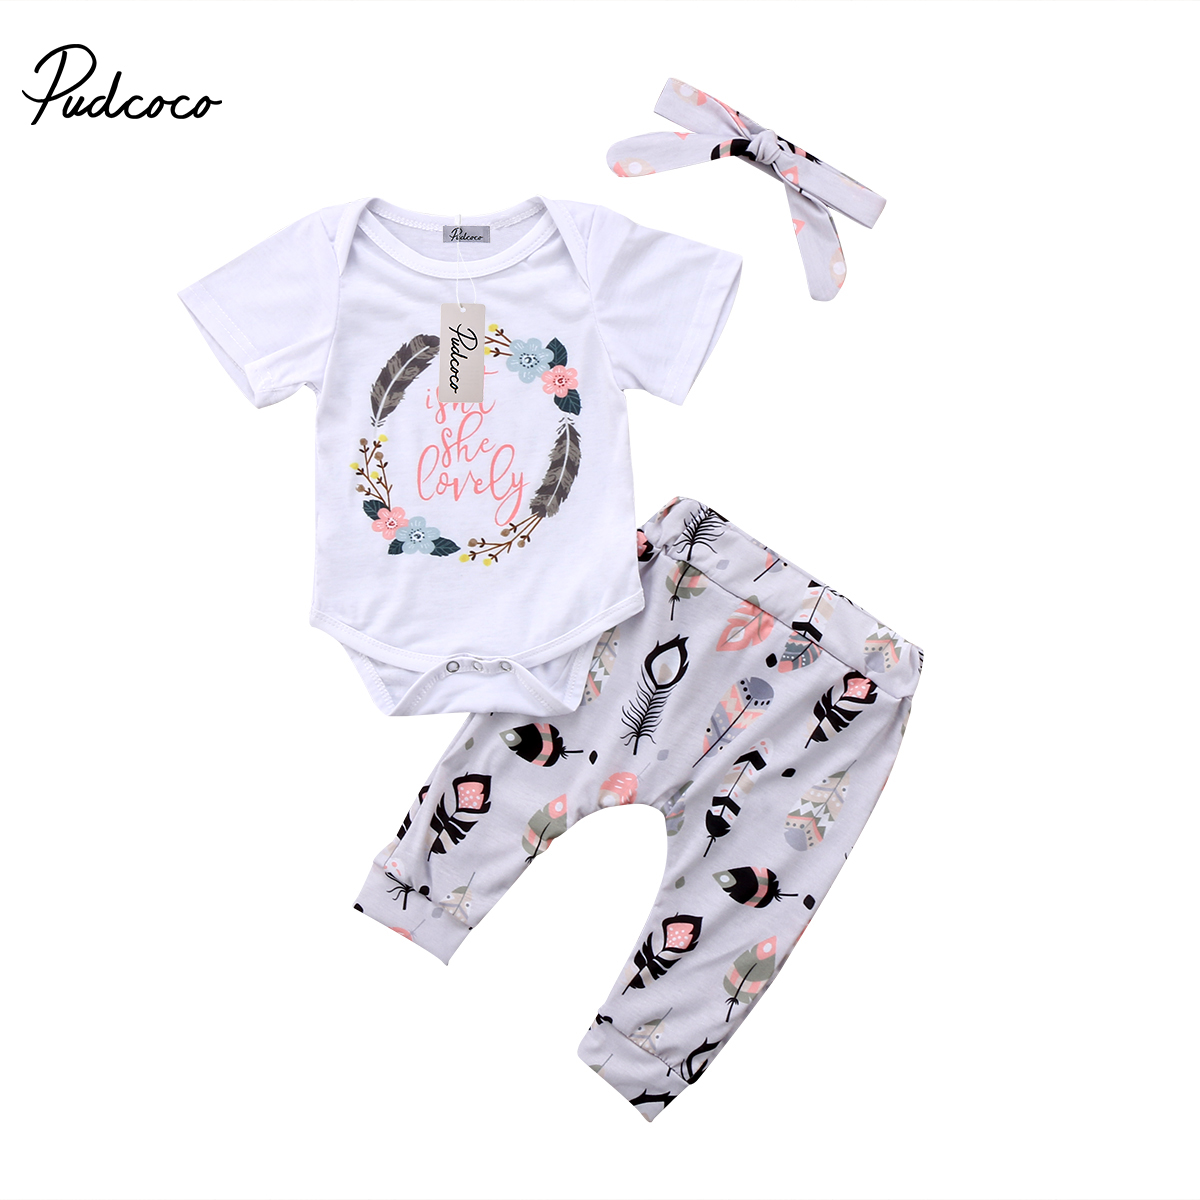 Pudcoco 3PCS Newborn Baby Girl Clothes Clothes Cotton Long Sleeve Romper Leggings Pants Headband Outfit Set 6-18Months Helen115